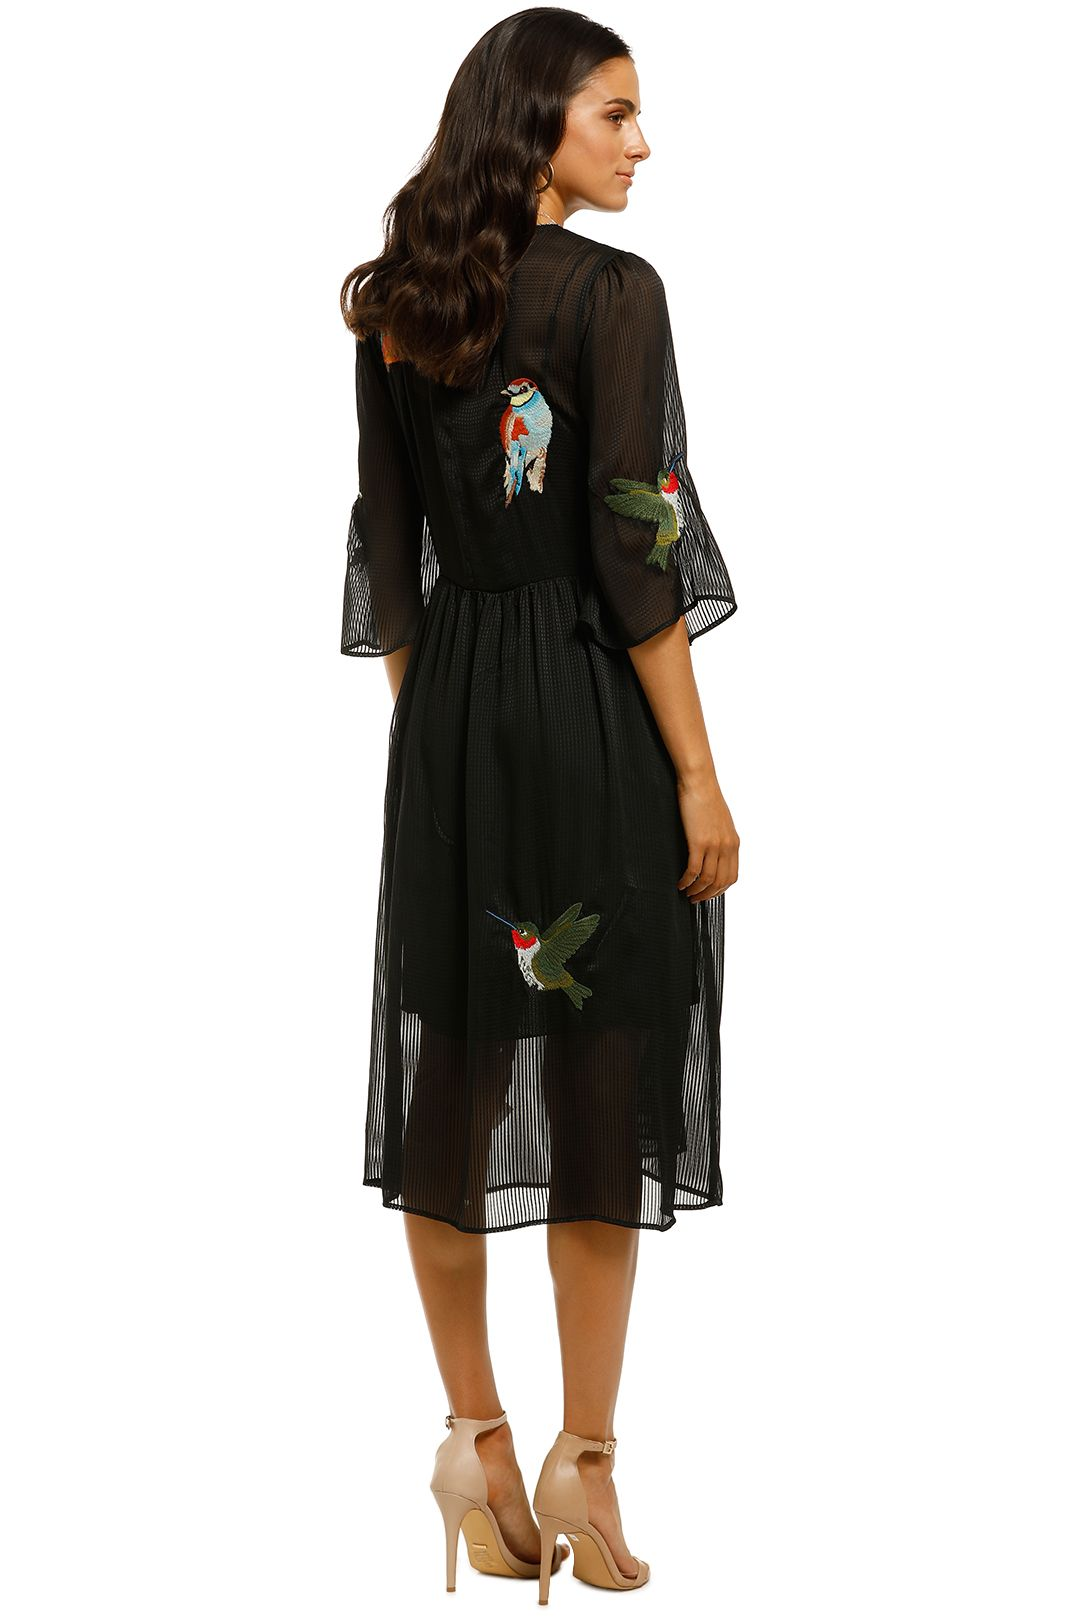 Curate-by-Trelise-Cooper-Sheer-Love-Dress-Black-Back